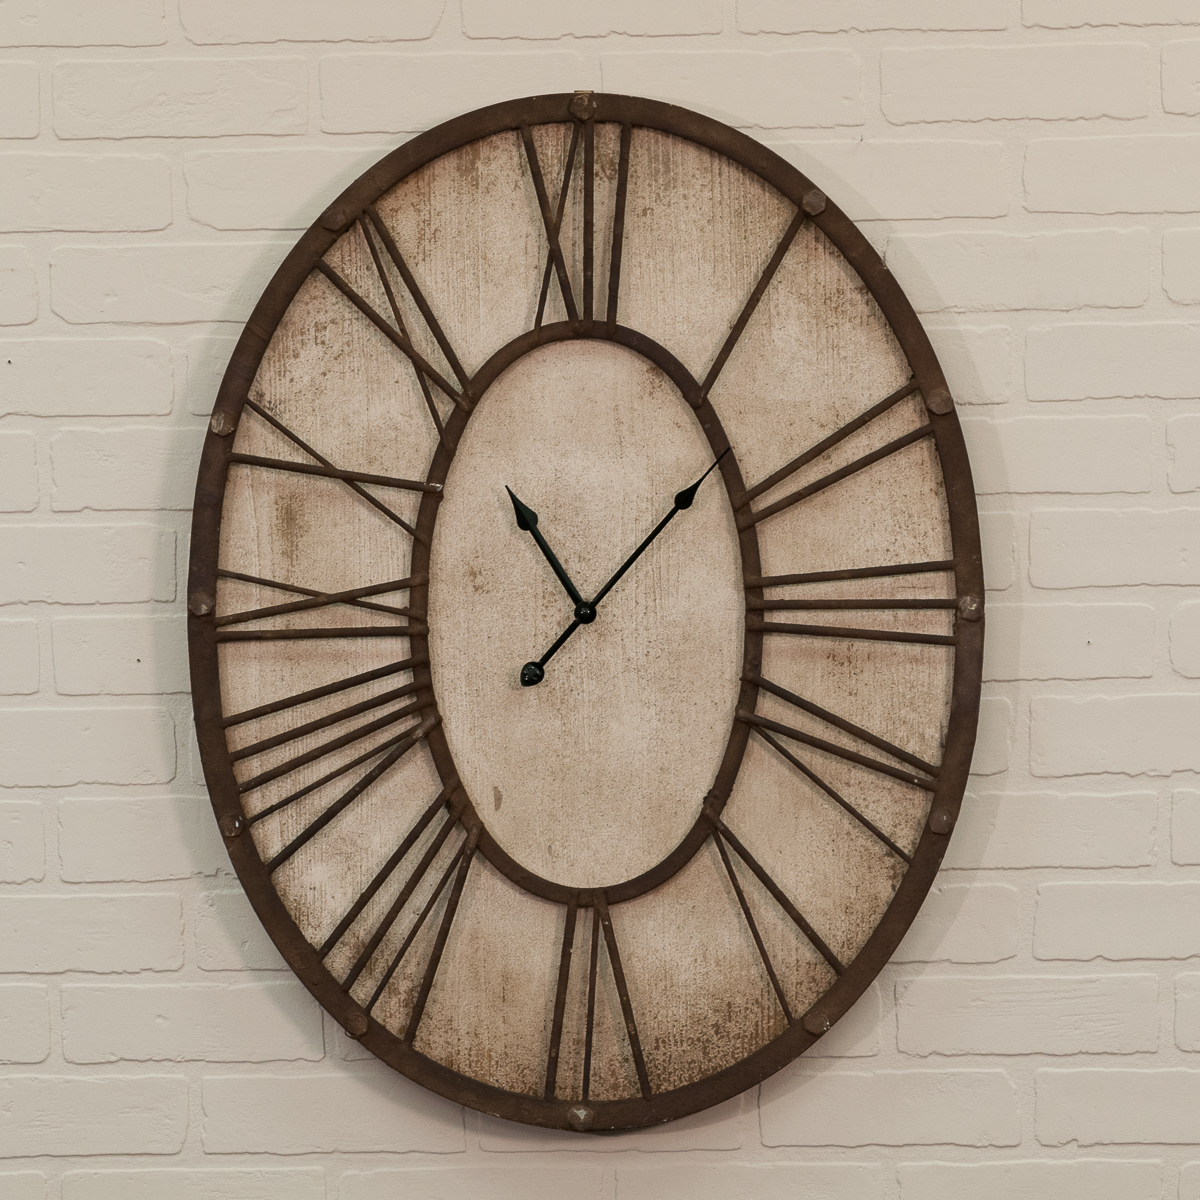 Oval Clock Face Wooden White Washed Clock With Roman Numerals